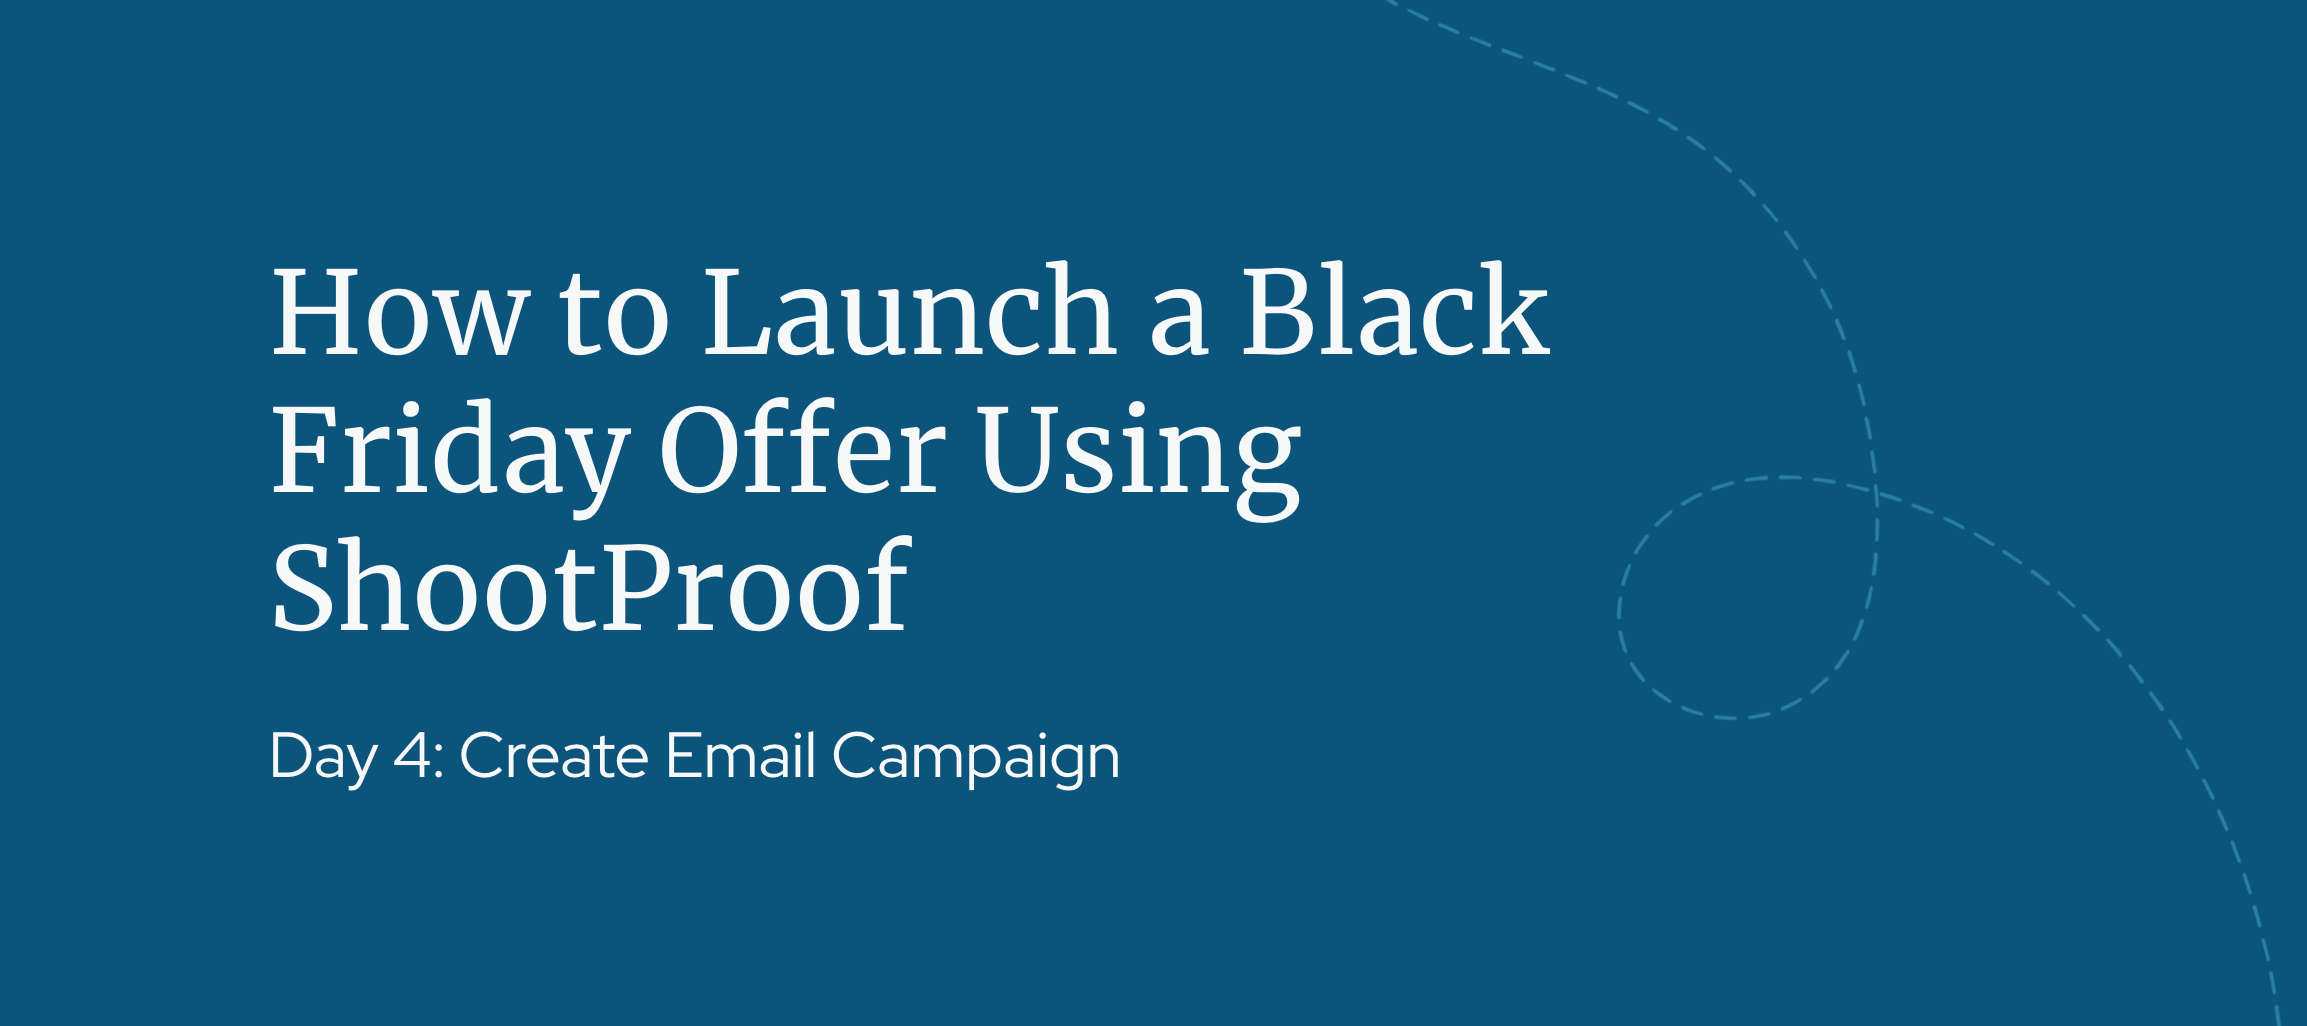 Day 4: How to Launch a Black Friday Offer Using ShootProof